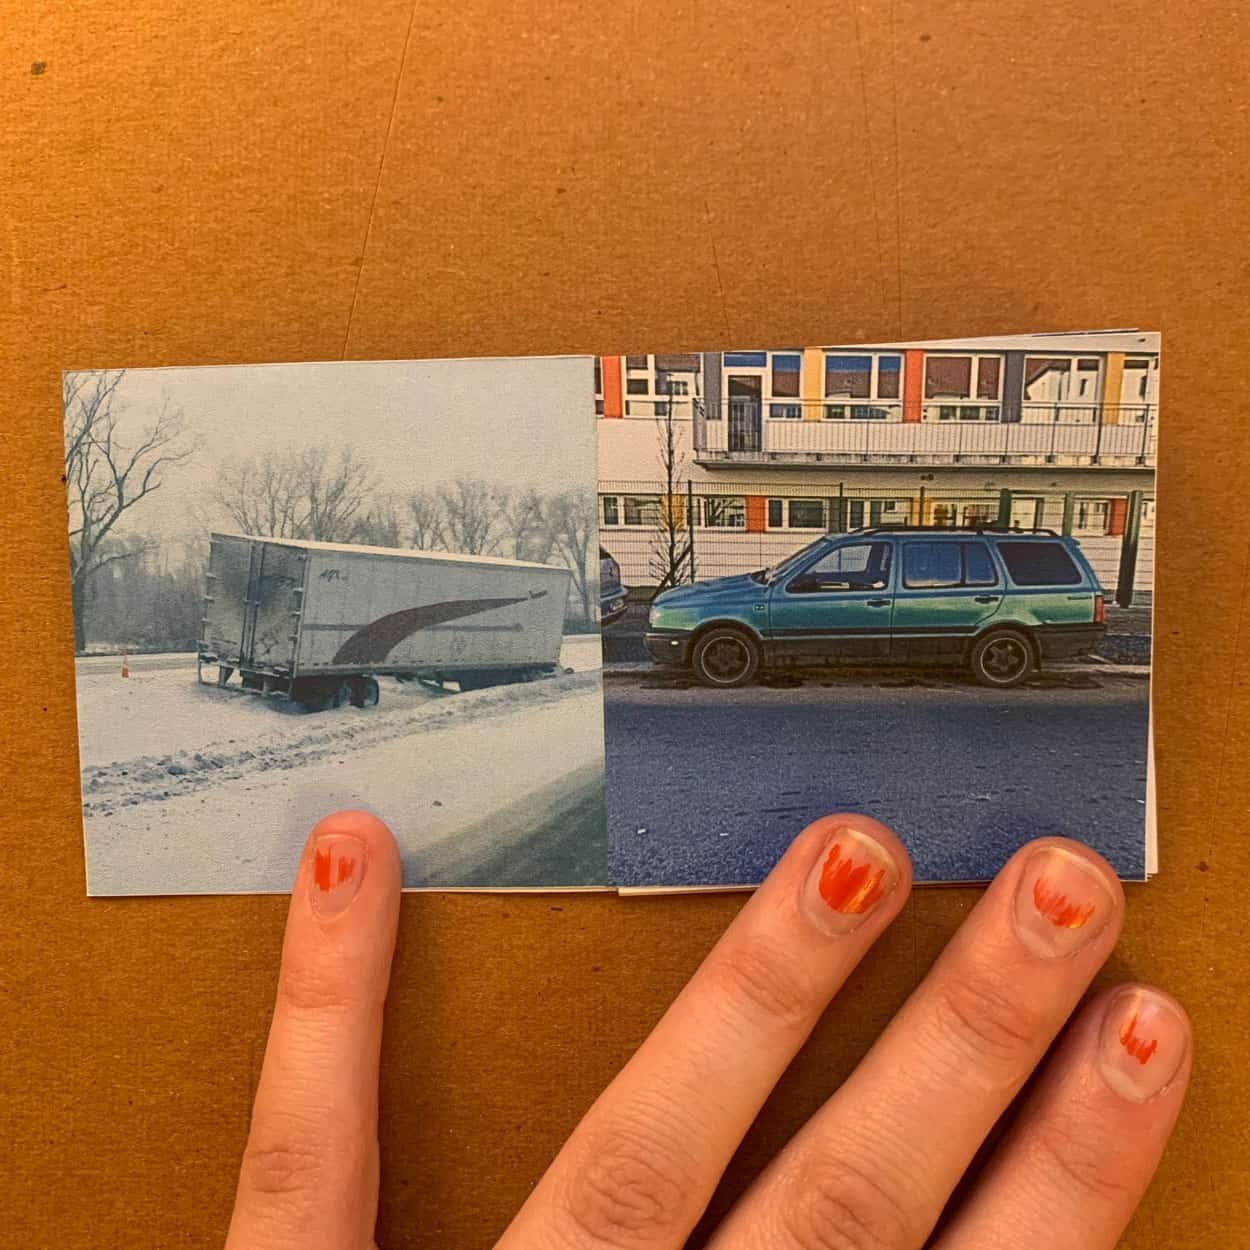 book pages showing a picture of a truck in snow on the left and a blue car on the right.